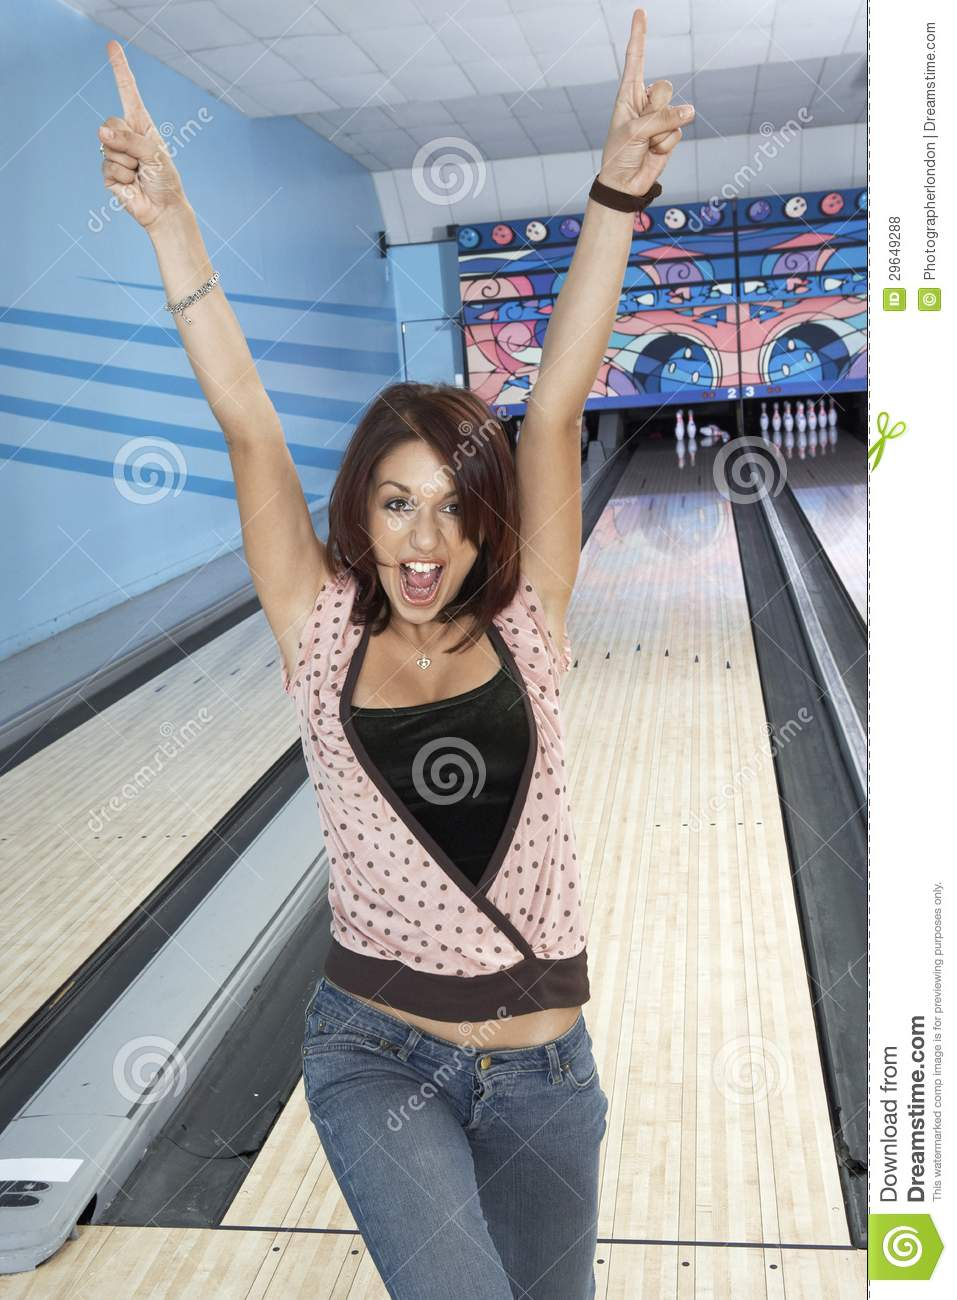 Young Woman Cheering At Bowling Alley Stock Photo Image